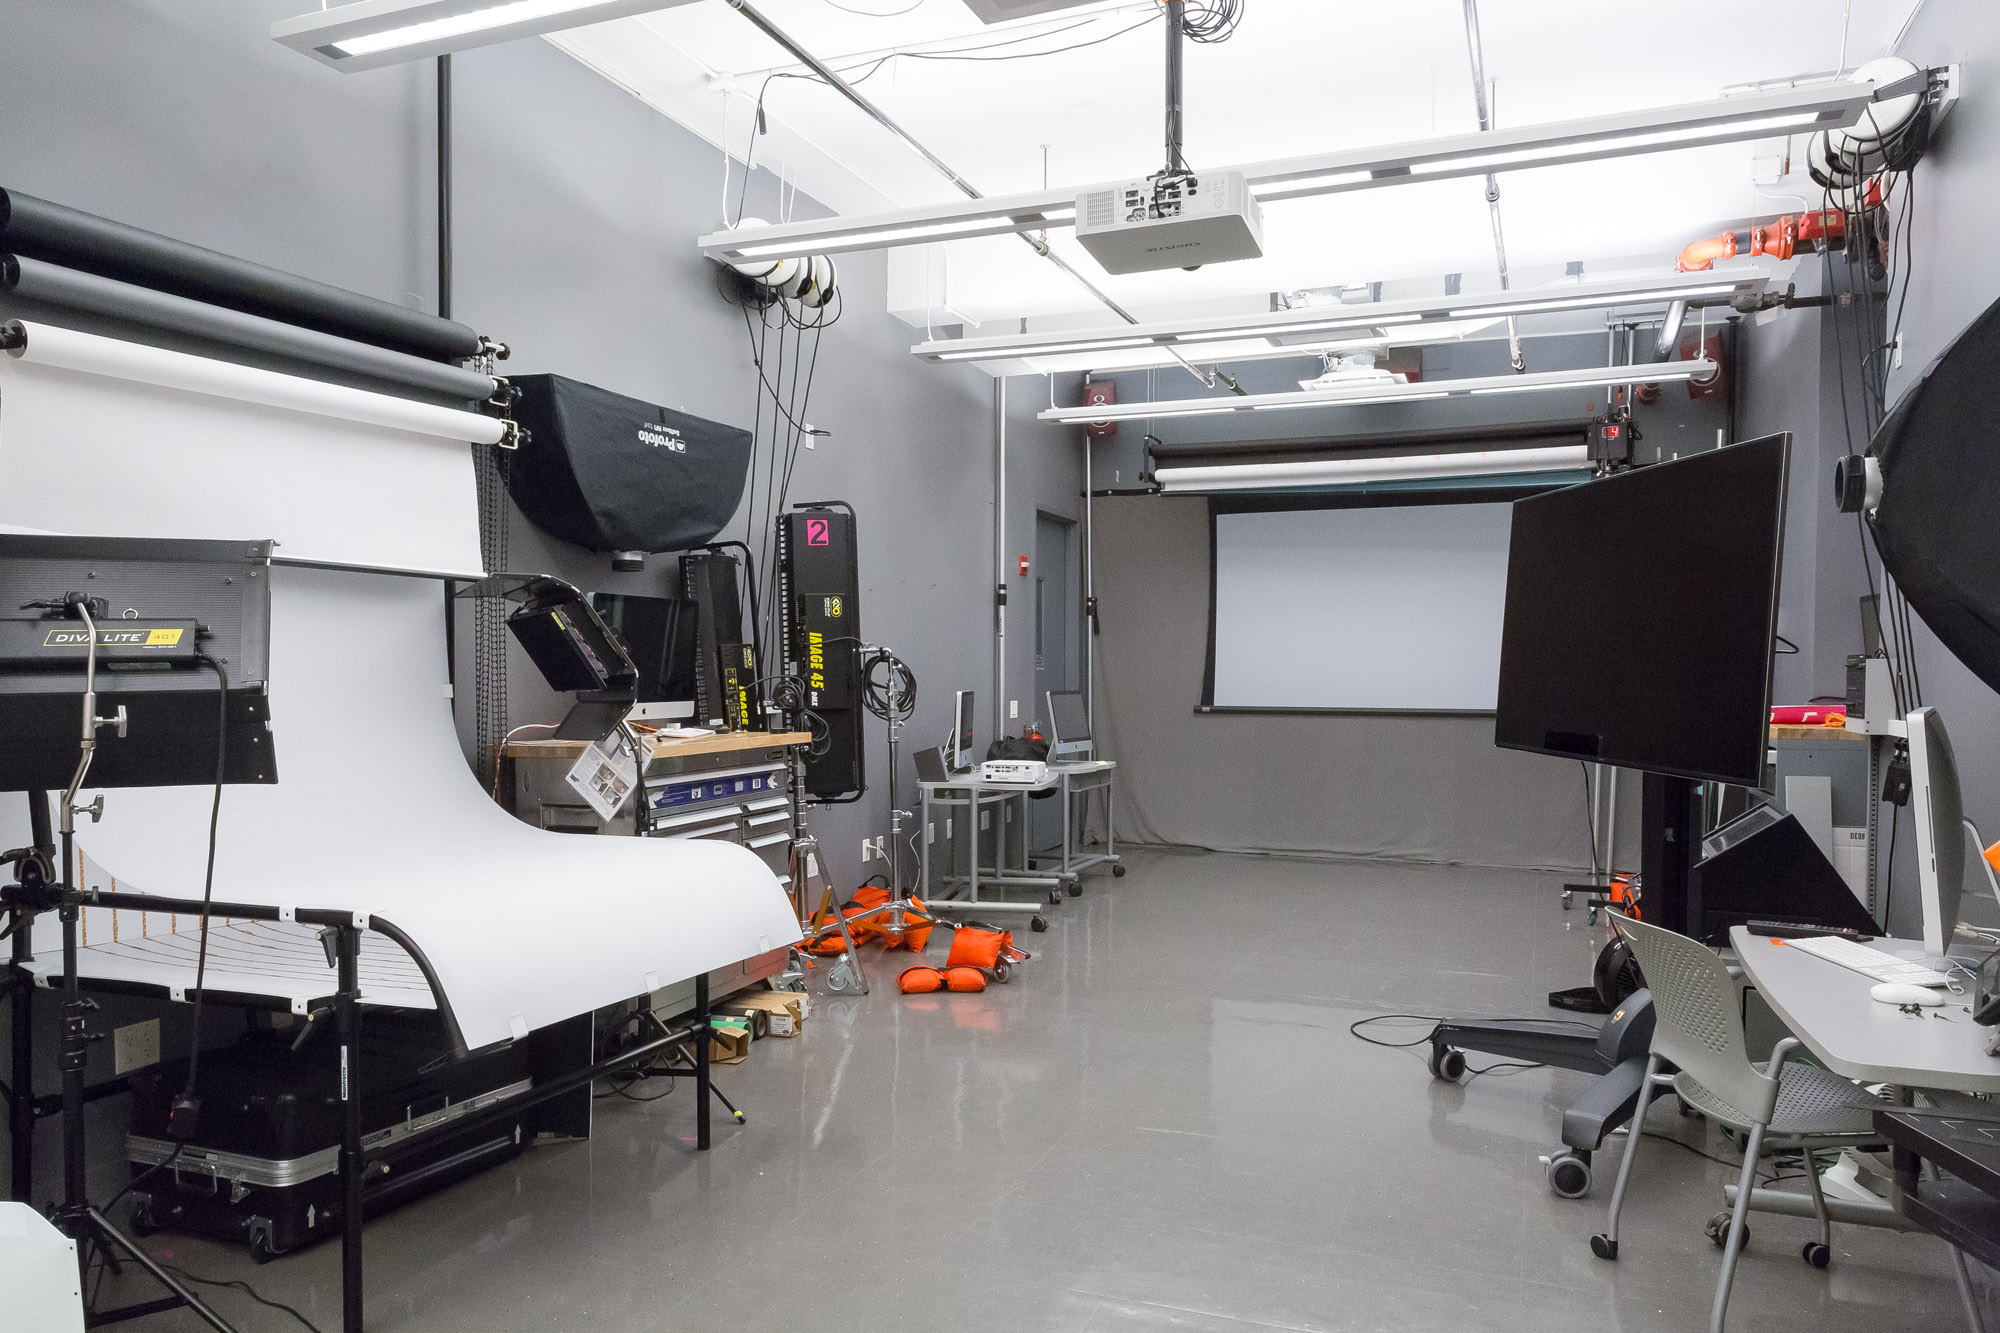 The BFA Fine Arts Photo and Video Capture Studio, showing a shooting table, light modifiers, LED Lamps, and a video monitor.